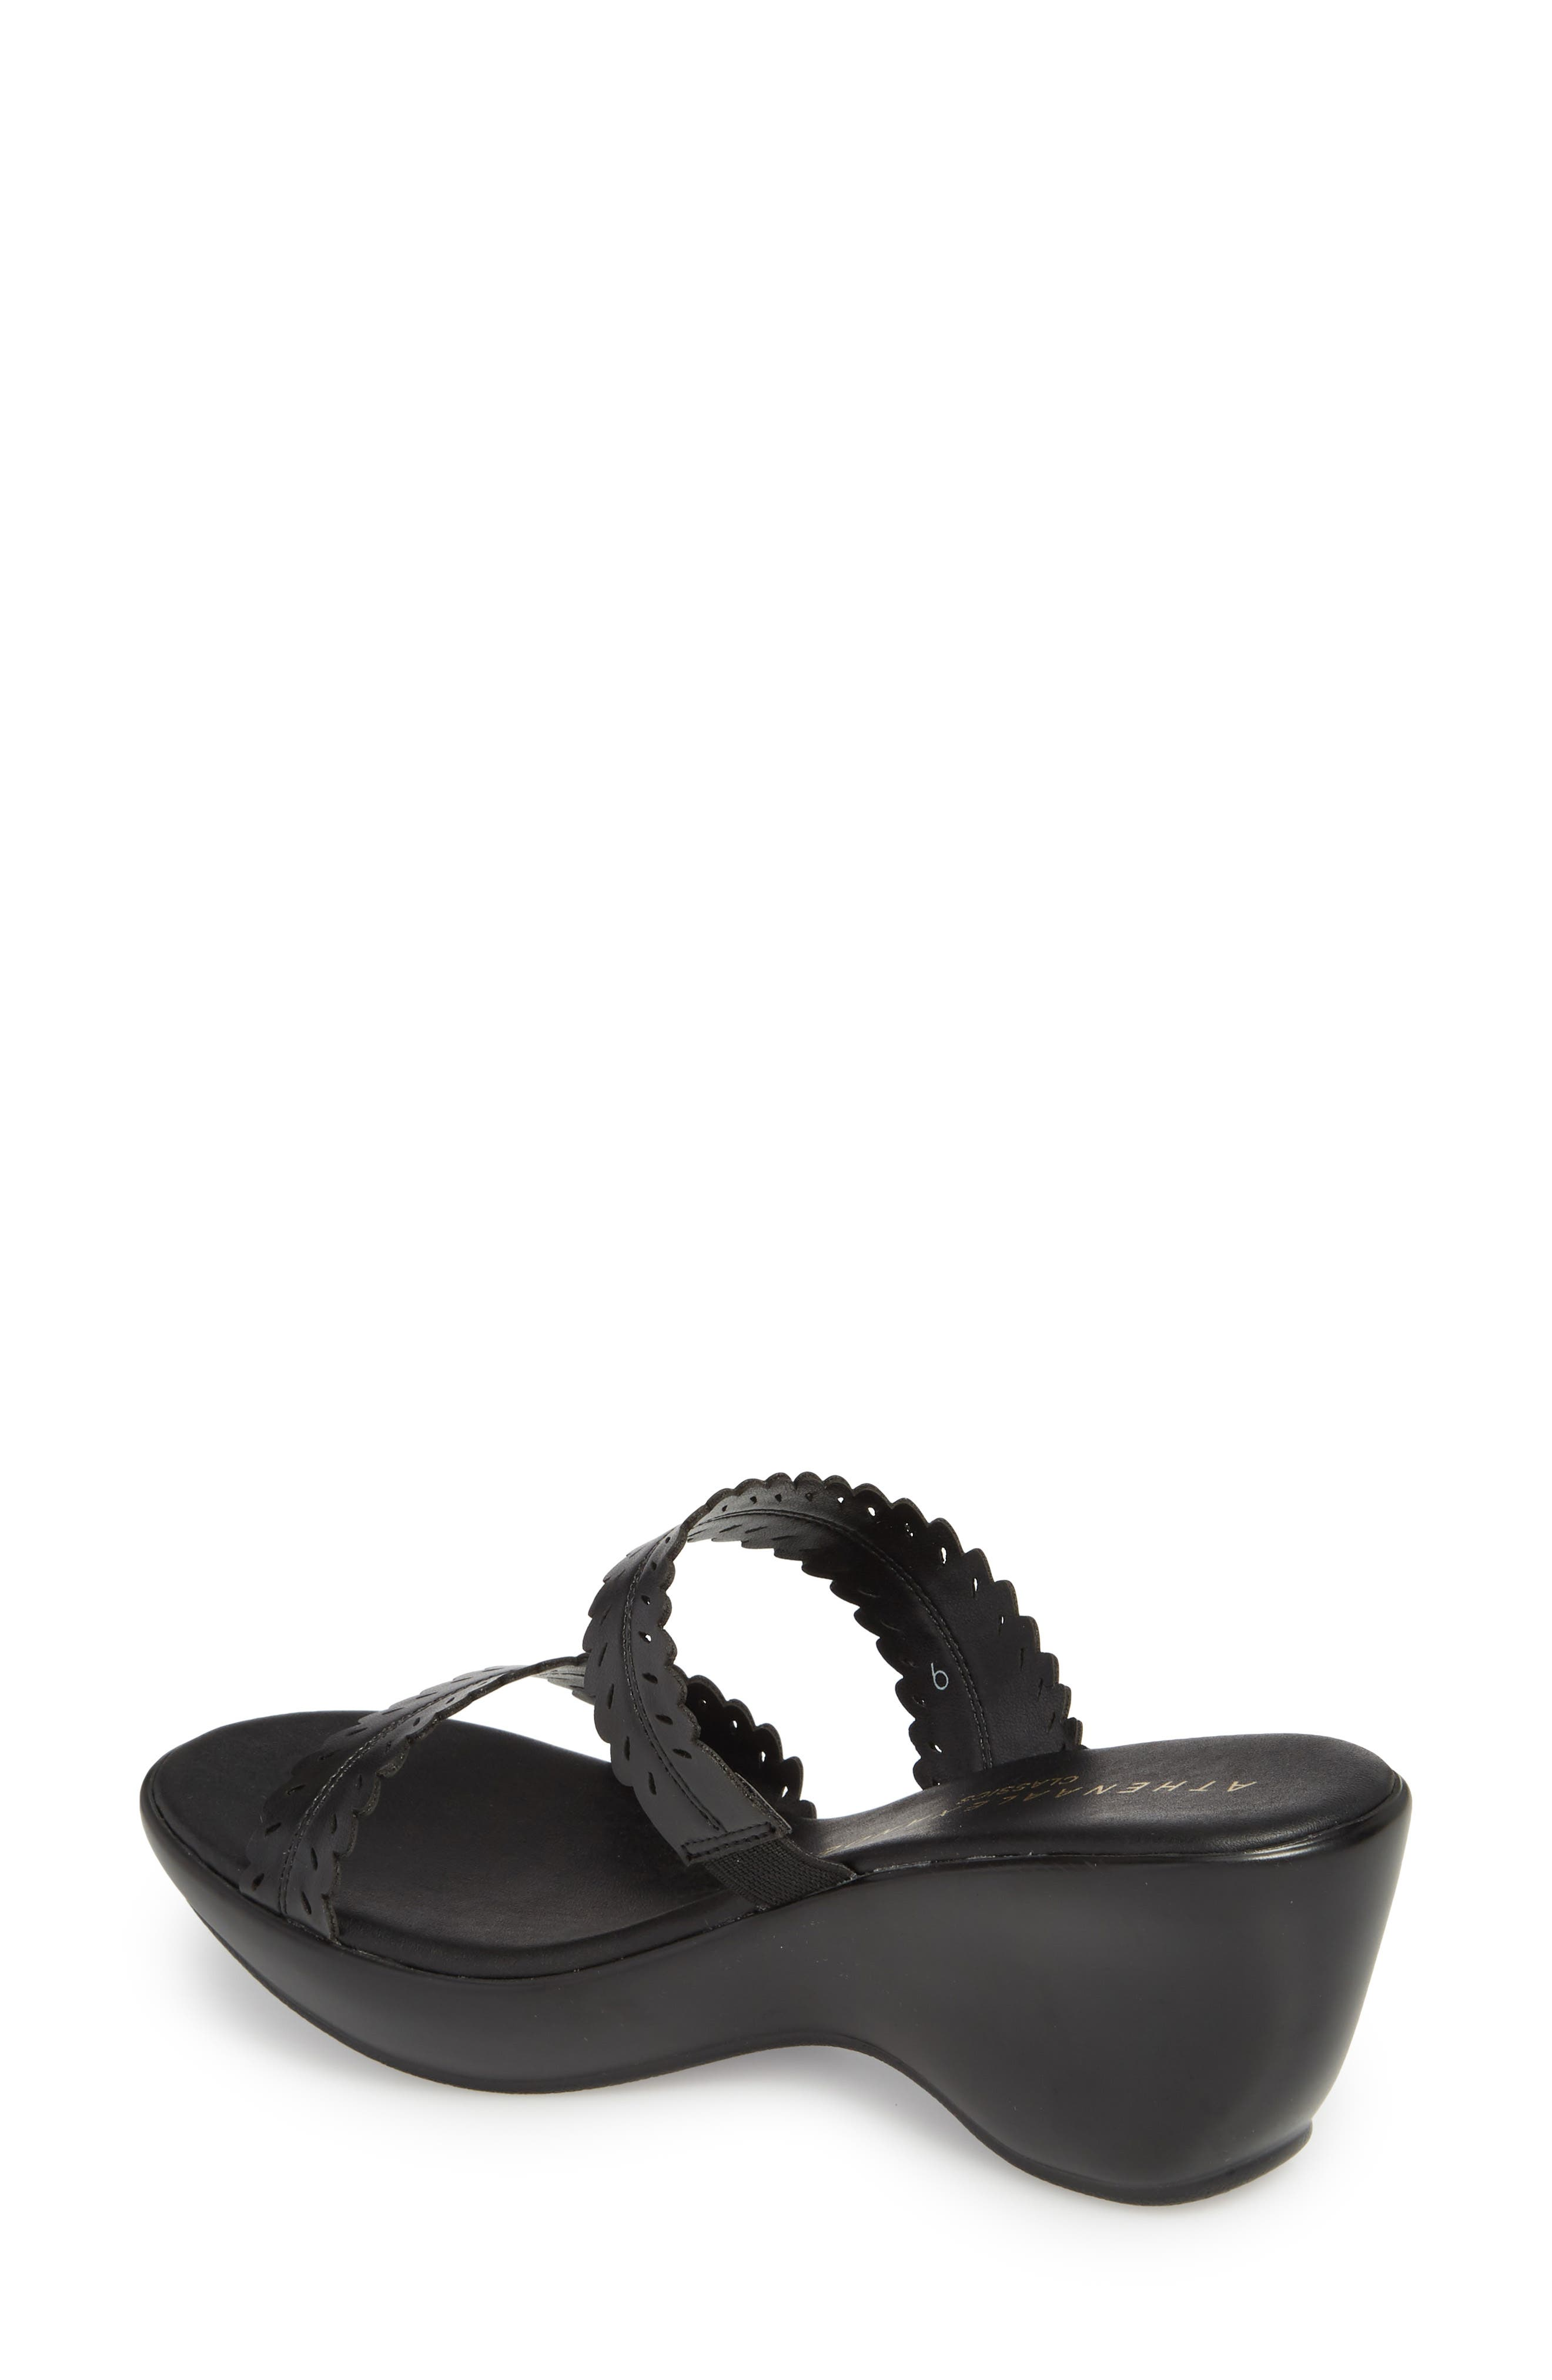 Pouty Wedge Sandal,                             Alternate thumbnail 2, color,                             BLACK FABRIC